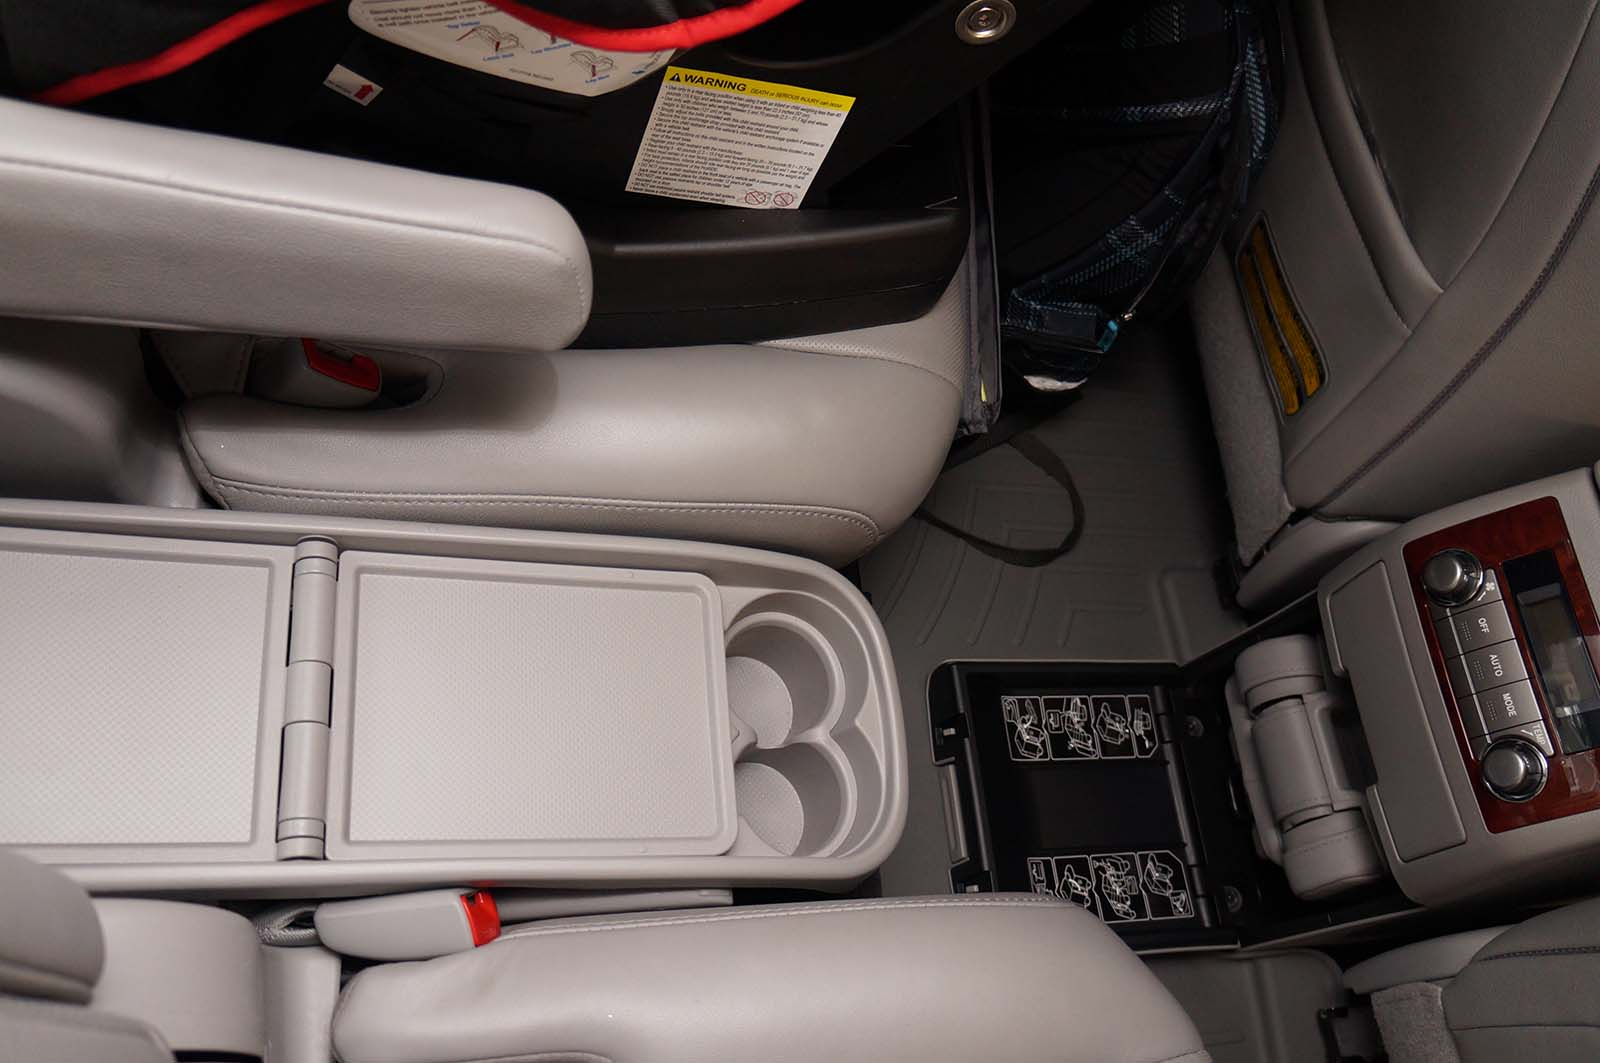 Toyota Highlander Captains Chairs Best Toyota Highlander Captains Chairs Ideas